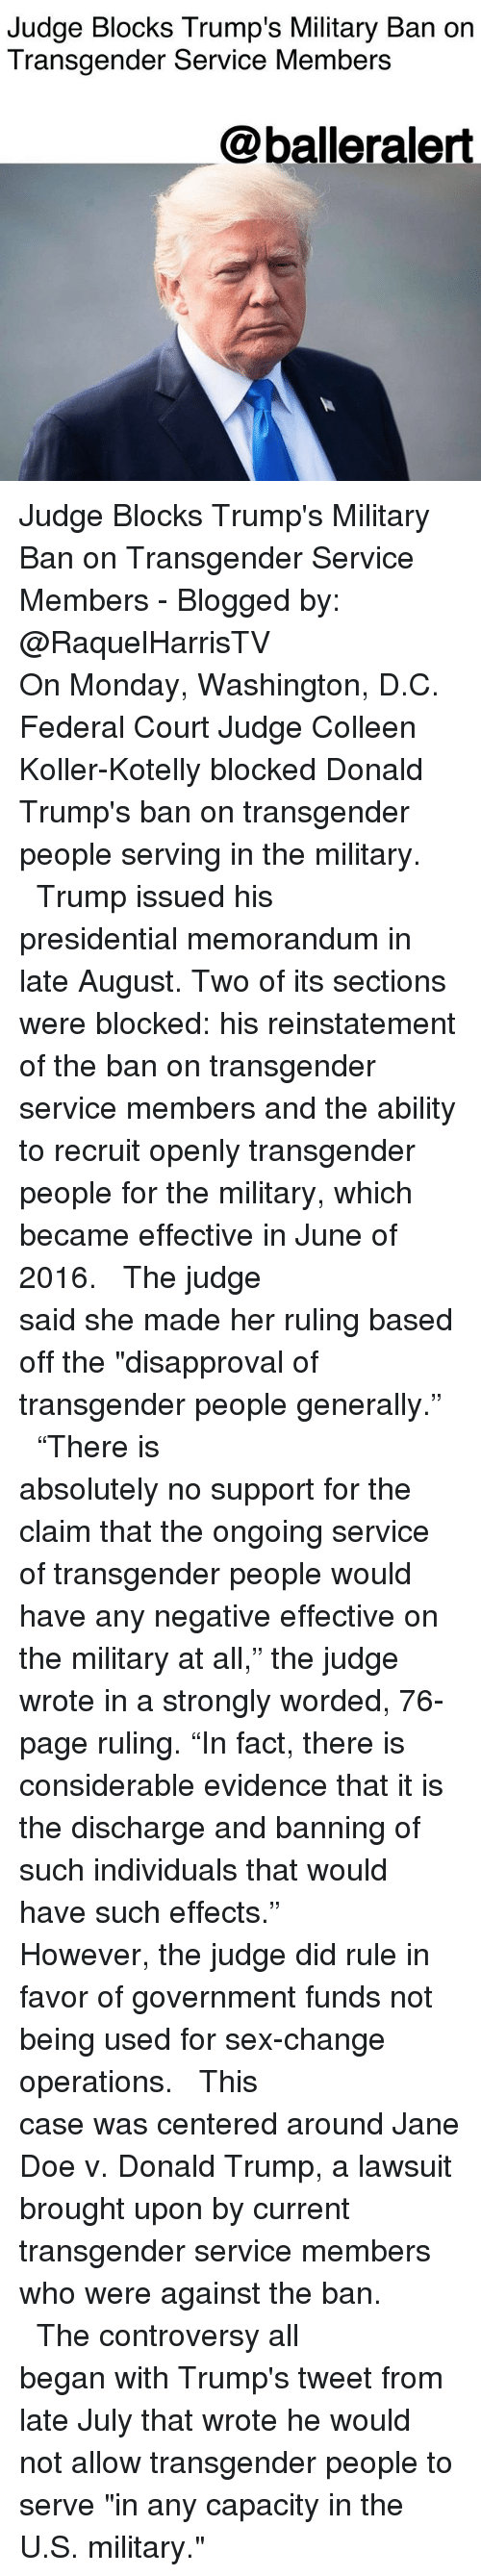 "Disapproval: Judge Blocks Trump's Military Ban on  Transgender Service Members  @balleralert Judge Blocks Trump's Military Ban on Transgender Service Members - Blogged by: @RaquelHarrisTV ⠀⠀⠀⠀⠀⠀⠀⠀⠀ ⠀⠀⠀⠀⠀⠀⠀⠀⠀ On Monday, Washington, D.C. Federal Court Judge Colleen Koller-Kotelly blocked Donald Trump's ban on transgender people serving in the military. ⠀⠀⠀⠀⠀⠀⠀⠀⠀ ⠀⠀⠀⠀⠀⠀⠀⠀⠀ Trump issued his presidential memorandum in late August. Two of its sections were blocked: his reinstatement of the ban on transgender service members and the ability to recruit openly transgender people for the military, which became effective in June of 2016. ⠀⠀⠀⠀⠀⠀⠀⠀⠀ ⠀⠀⠀⠀⠀⠀⠀⠀⠀ The judge said she made her ruling based off the ""disapproval of transgender people generally."" ⠀⠀⠀⠀⠀⠀⠀⠀⠀ ⠀⠀⠀⠀⠀⠀⠀⠀⠀ ""There is absolutely no support for the claim that the ongoing service of transgender people would have any negative effective on the military at all,"" the judge wrote in a strongly worded, 76-page ruling. ""In fact, there is considerable evidence that it is the discharge and banning of such individuals that would have such effects."" ⠀⠀⠀⠀⠀⠀⠀⠀⠀ ⠀⠀⠀⠀⠀⠀⠀⠀⠀ However, the judge did rule in favor of government funds not being used for sex-change operations. ⠀⠀⠀⠀⠀⠀⠀⠀⠀ ⠀⠀⠀⠀⠀⠀⠀⠀⠀ This case was centered around Jane Doe v. Donald Trump, a lawsuit brought upon by current transgender service members who were against the ban. ⠀⠀⠀⠀⠀⠀⠀⠀⠀ ⠀⠀⠀⠀⠀⠀⠀⠀⠀ The controversy all began with Trump's tweet from late July that wrote he would not allow transgender people to serve ""in any capacity in the U.S. military."""